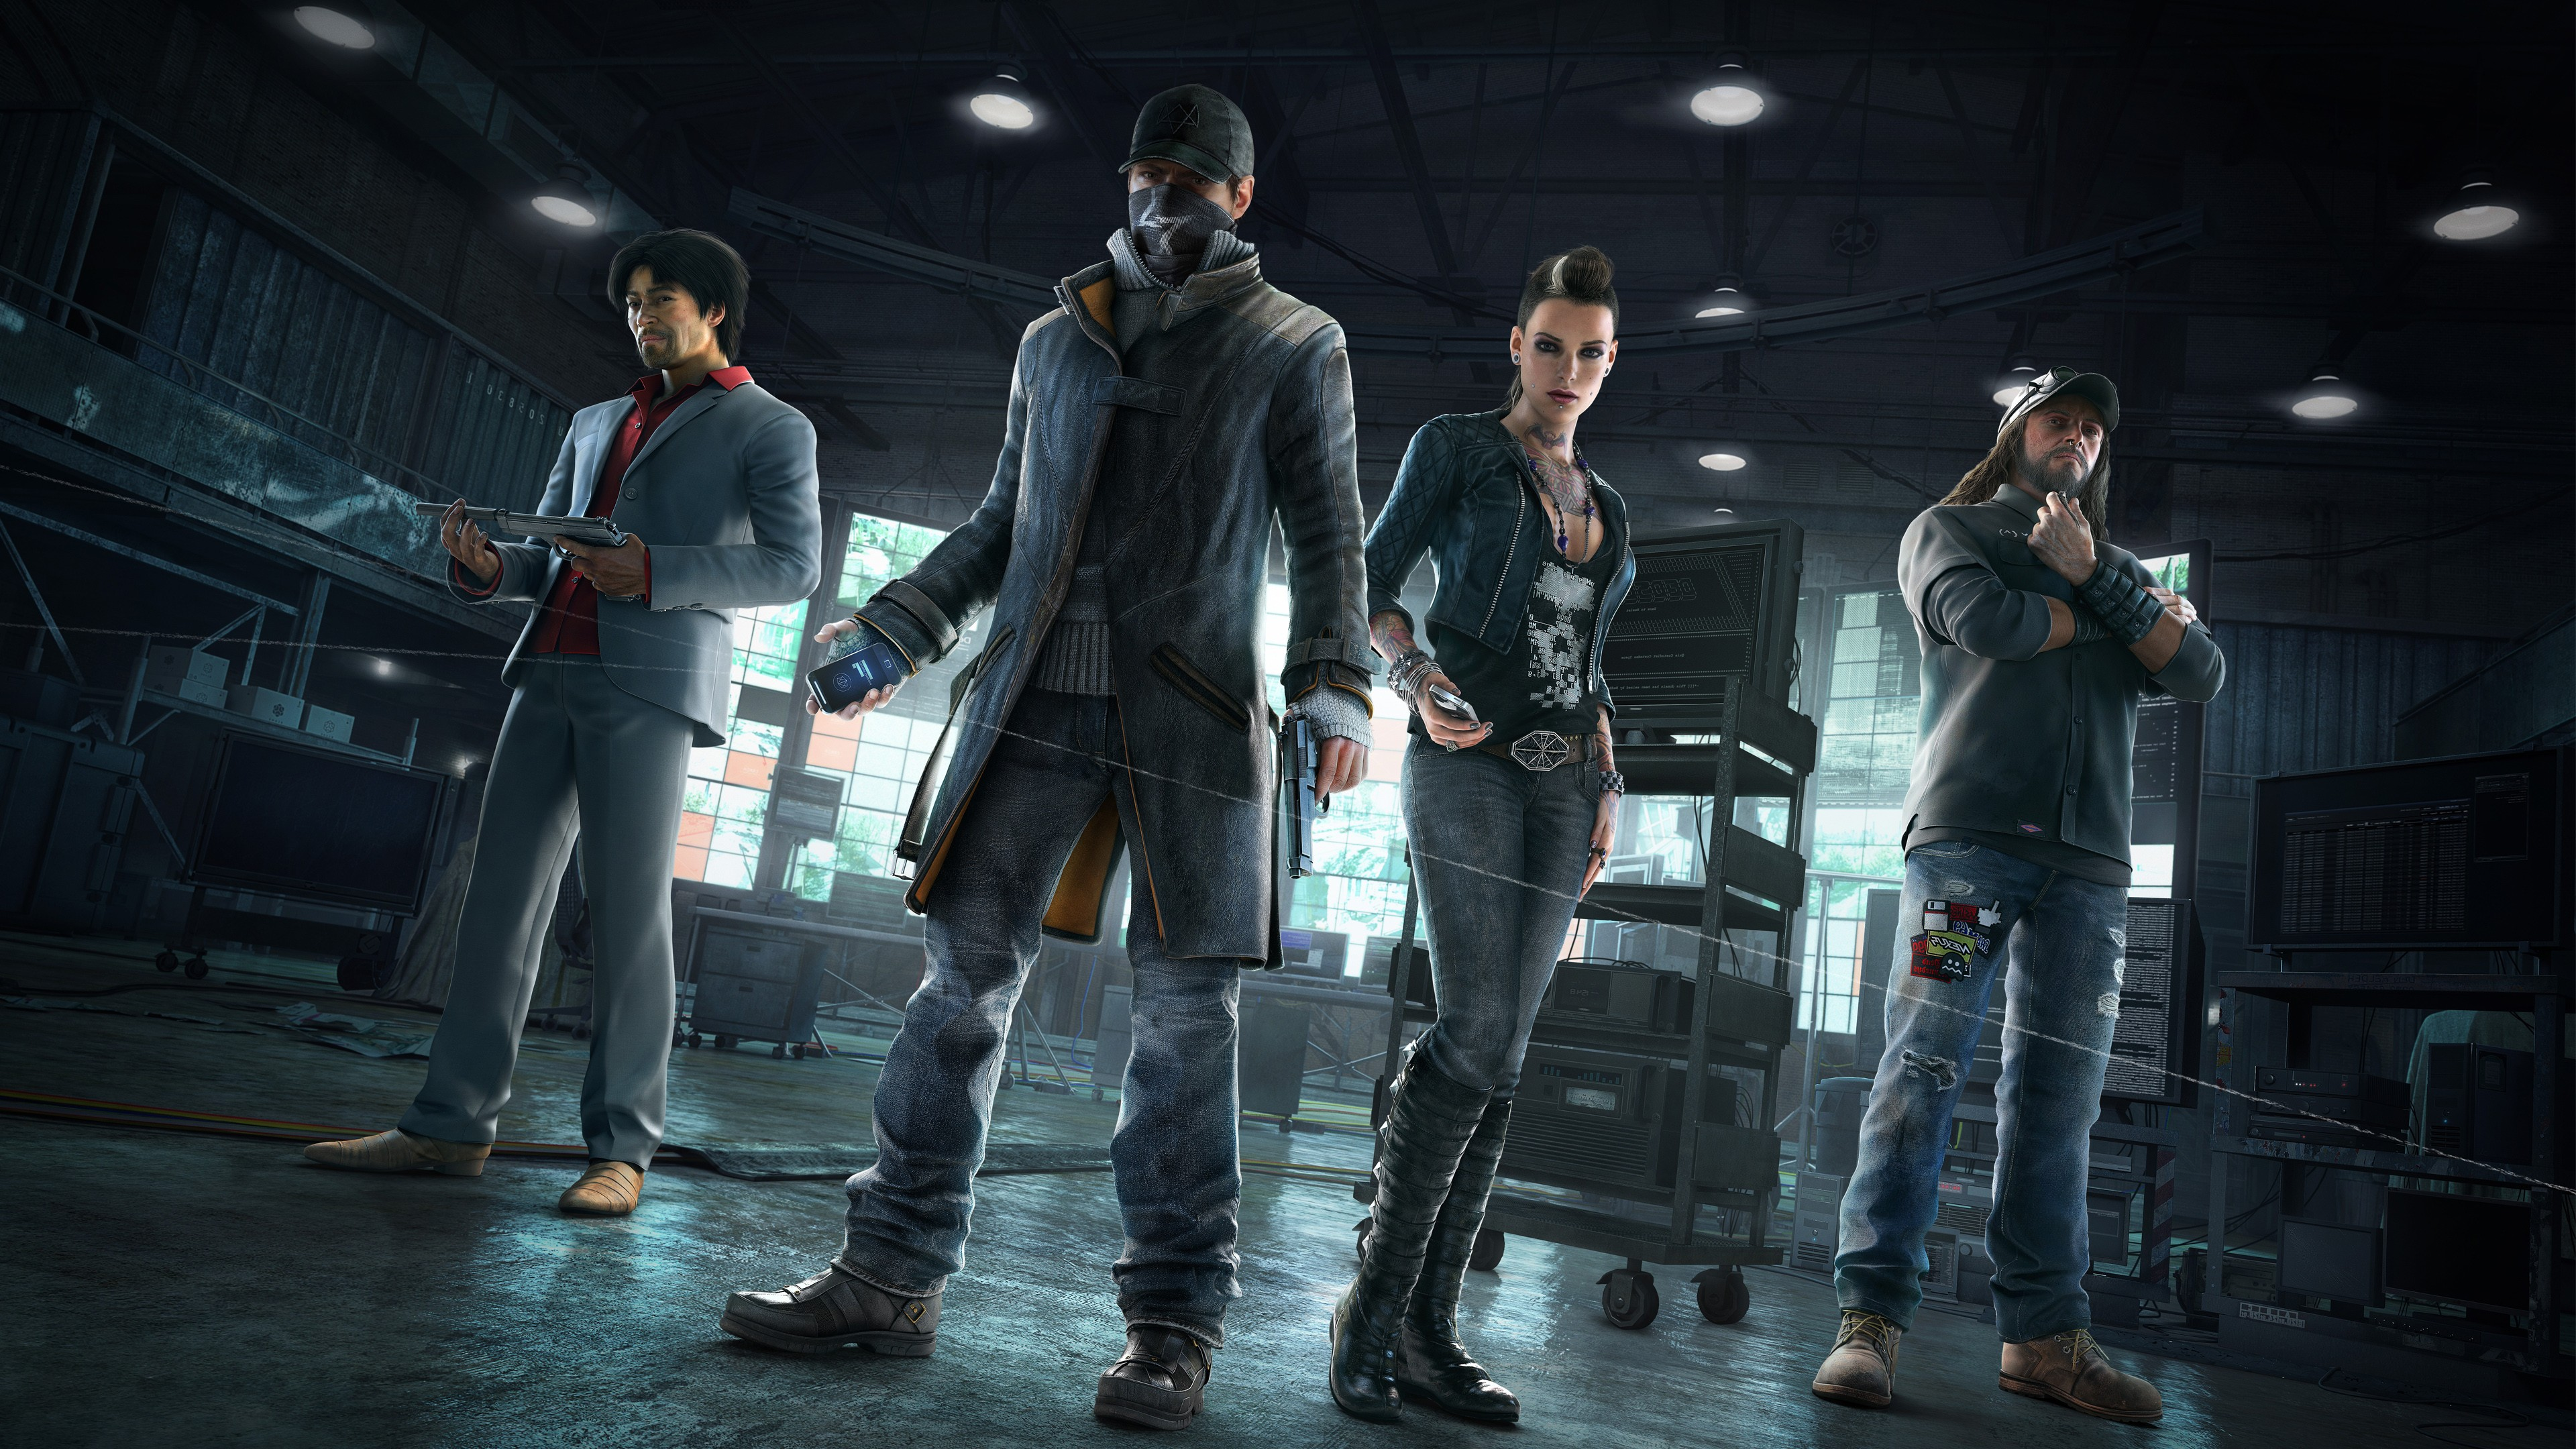 1366x768 Watch Dogs 2 1366x768 Resolution Hd 4k Wallpapers Images